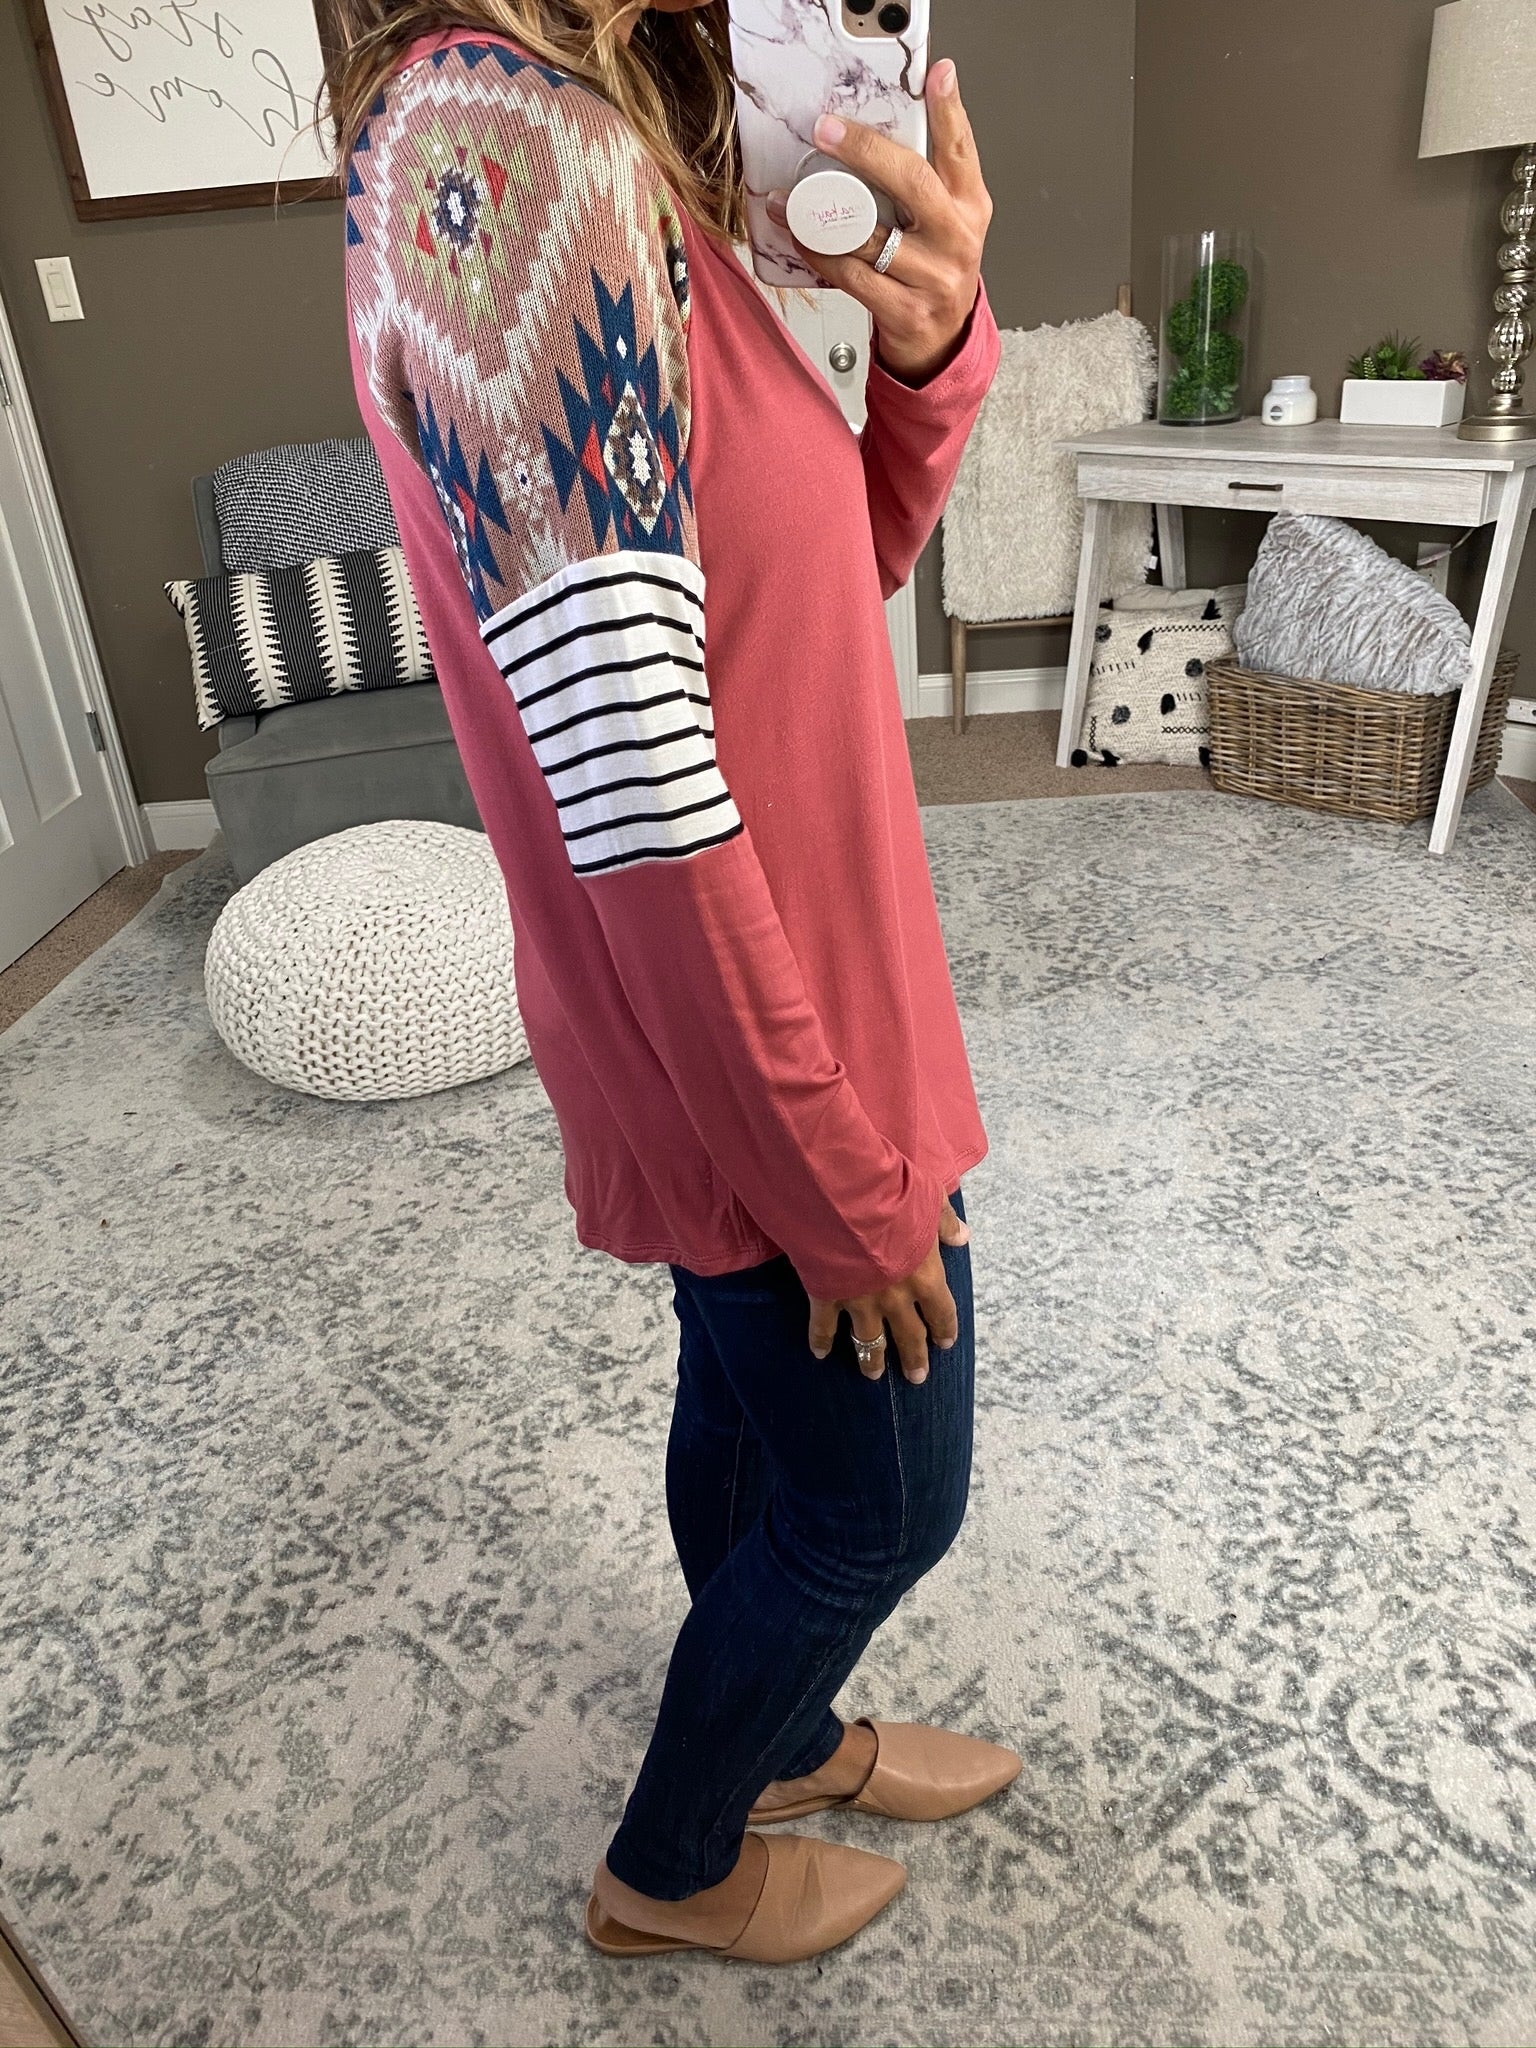 Wildfire Mauve Vneck with Striped, & Western Patterned Colorblock Sleeves